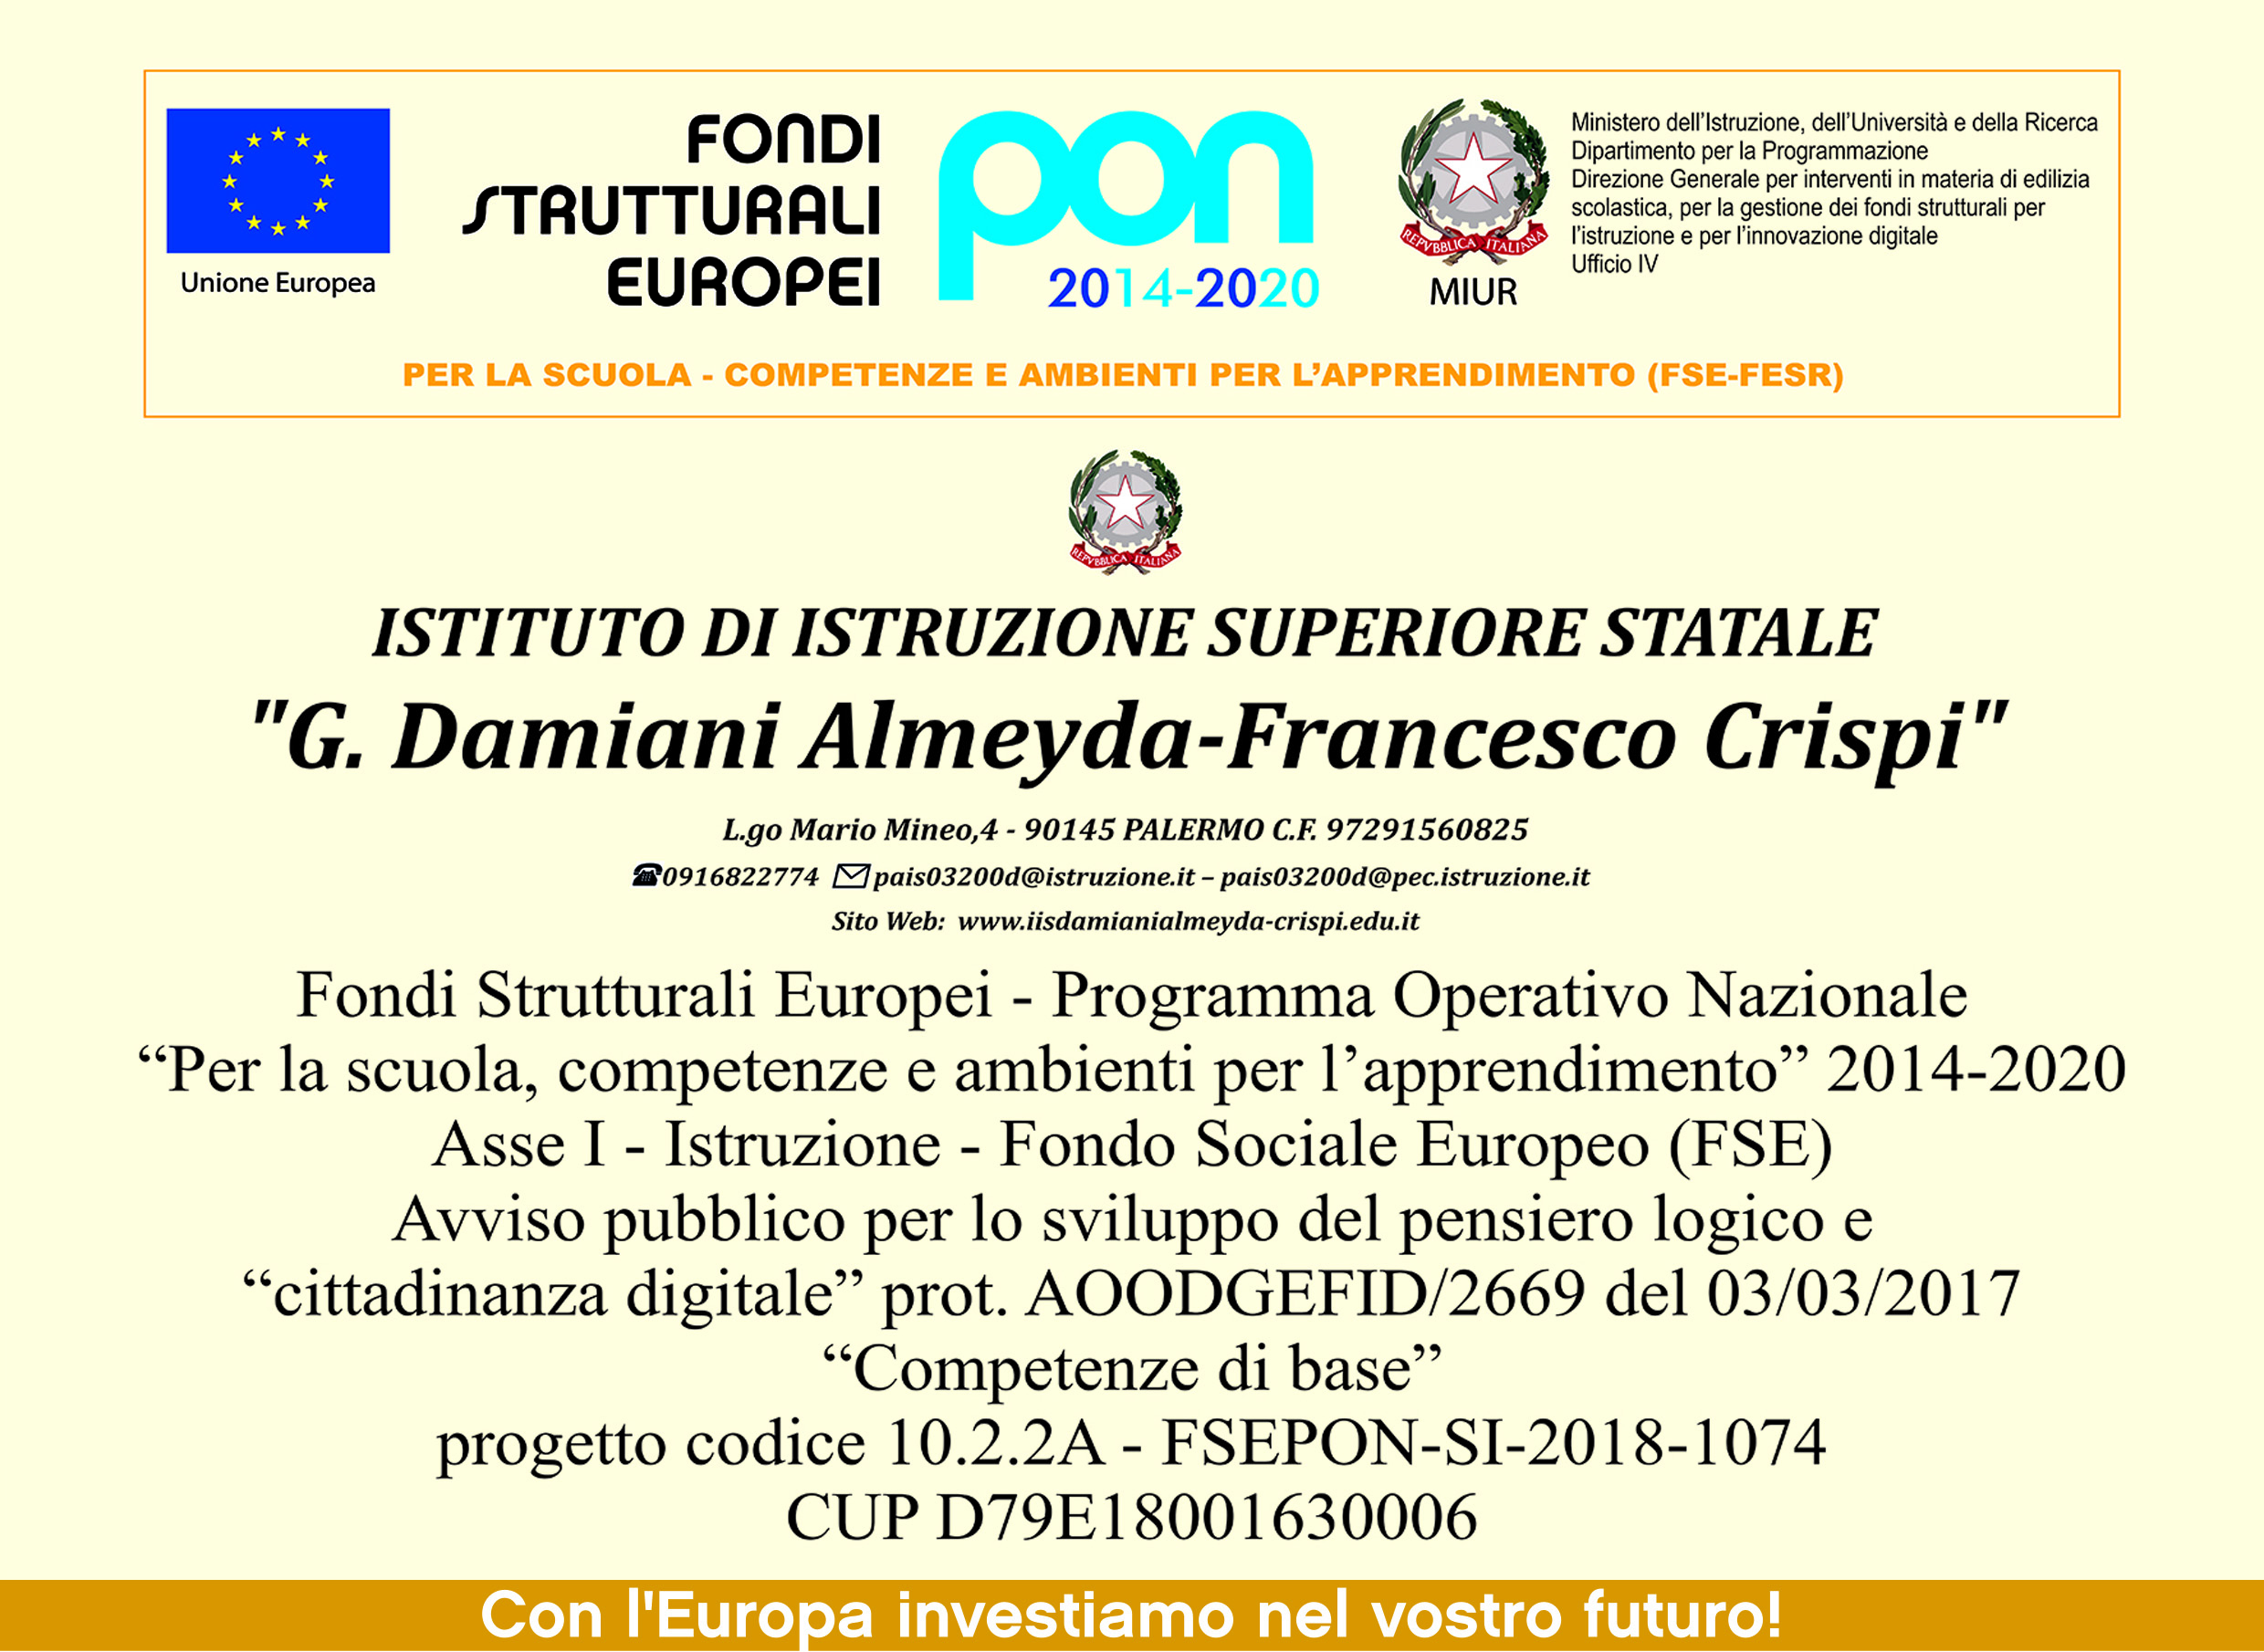 FSE_CITTADINANZA_DIGITALE.jpg